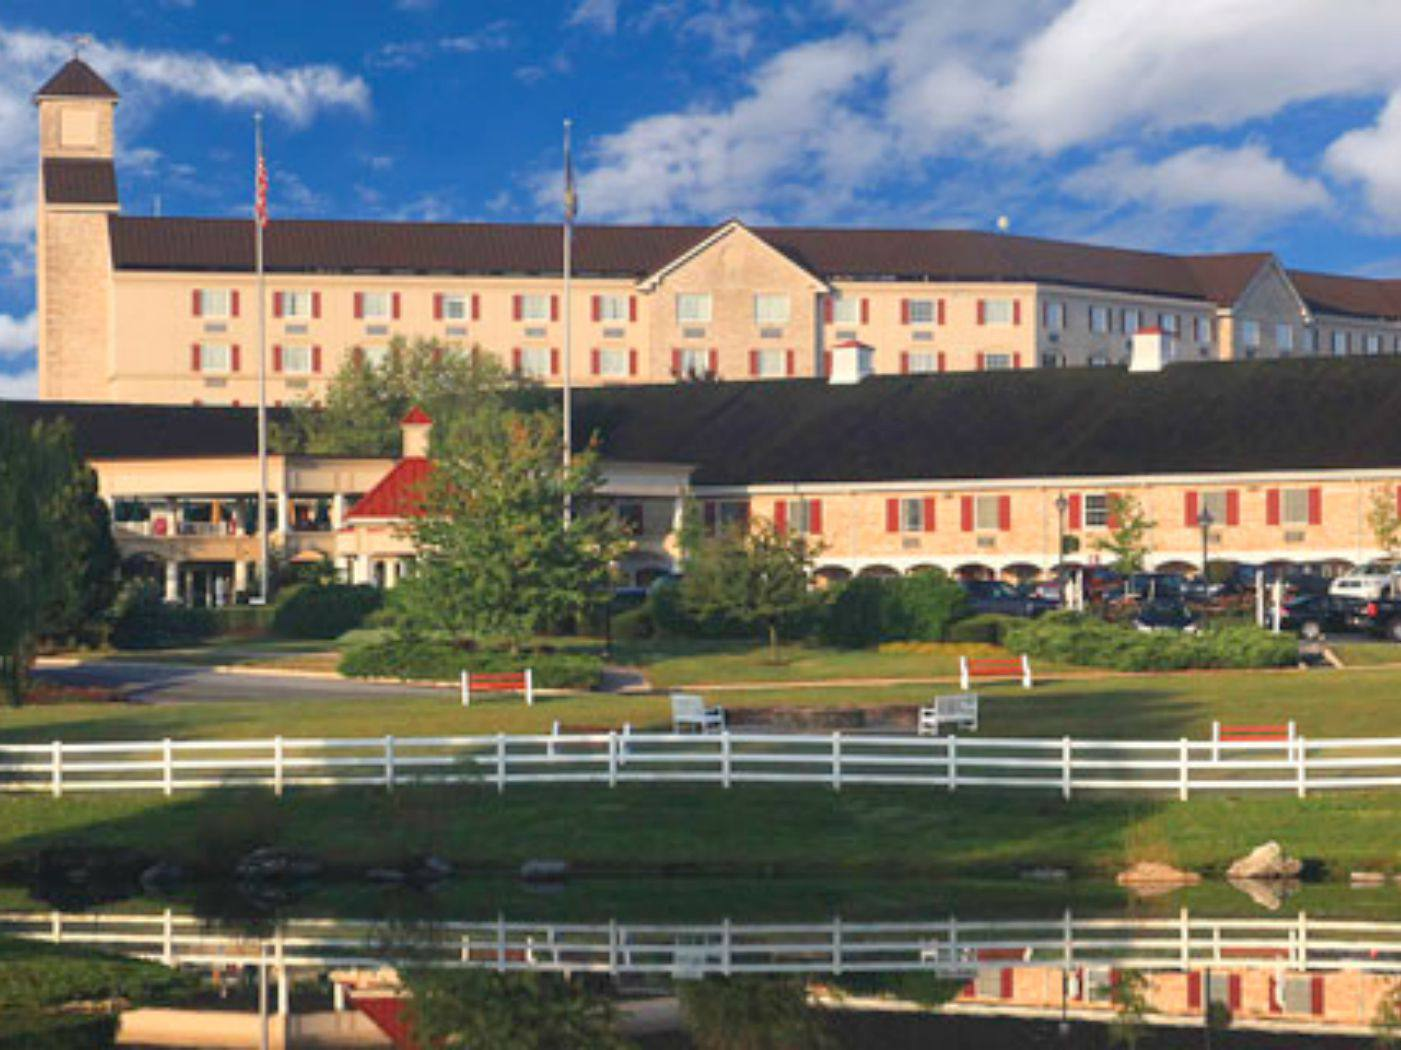 Best Places To Stay In Hershey Pennsylvania